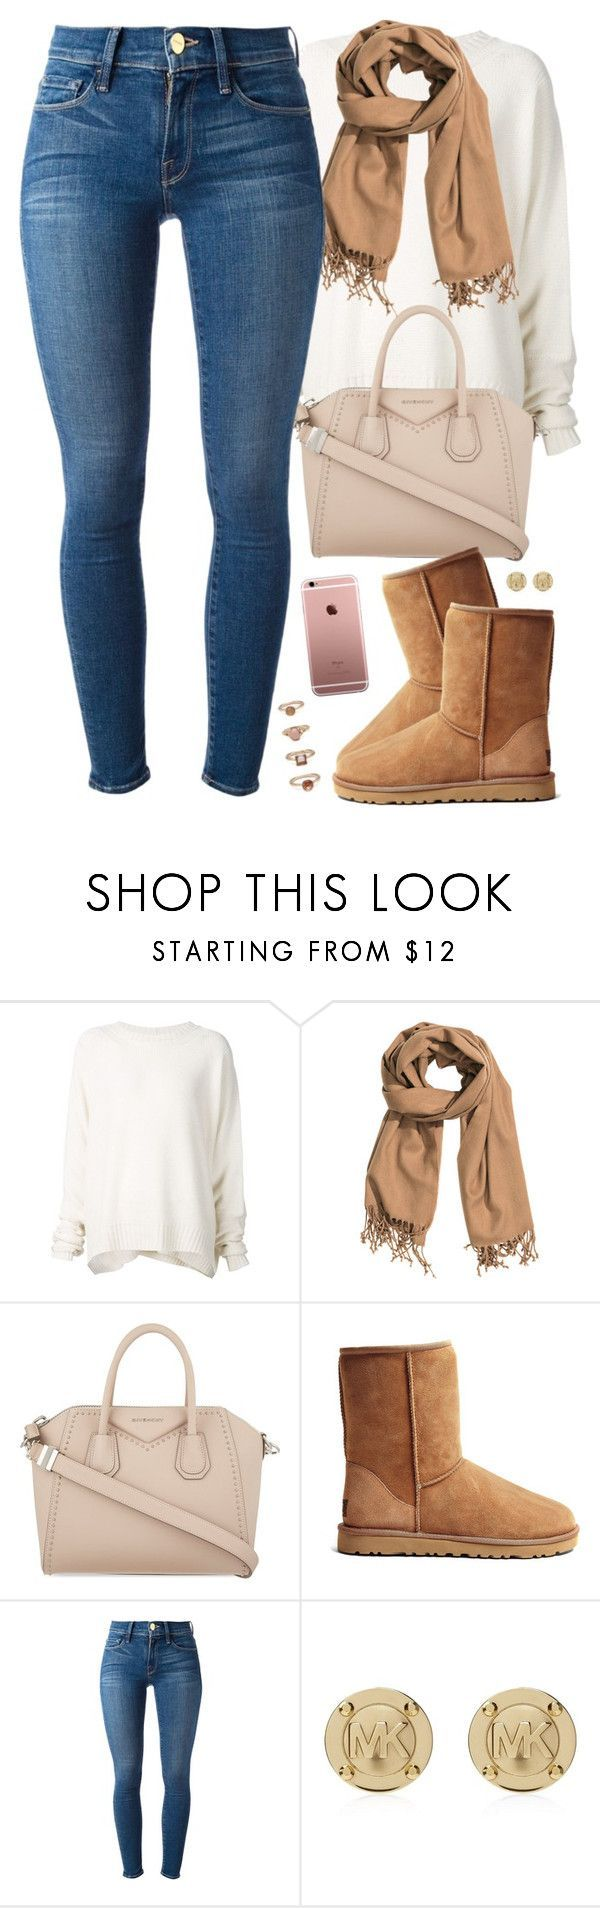 fall mood by daisym0nste on Polyvore featuring URBAN ZEN, Frame Denim, UGG Australia, Givenchy, Forever 21, Michael Kors and HM